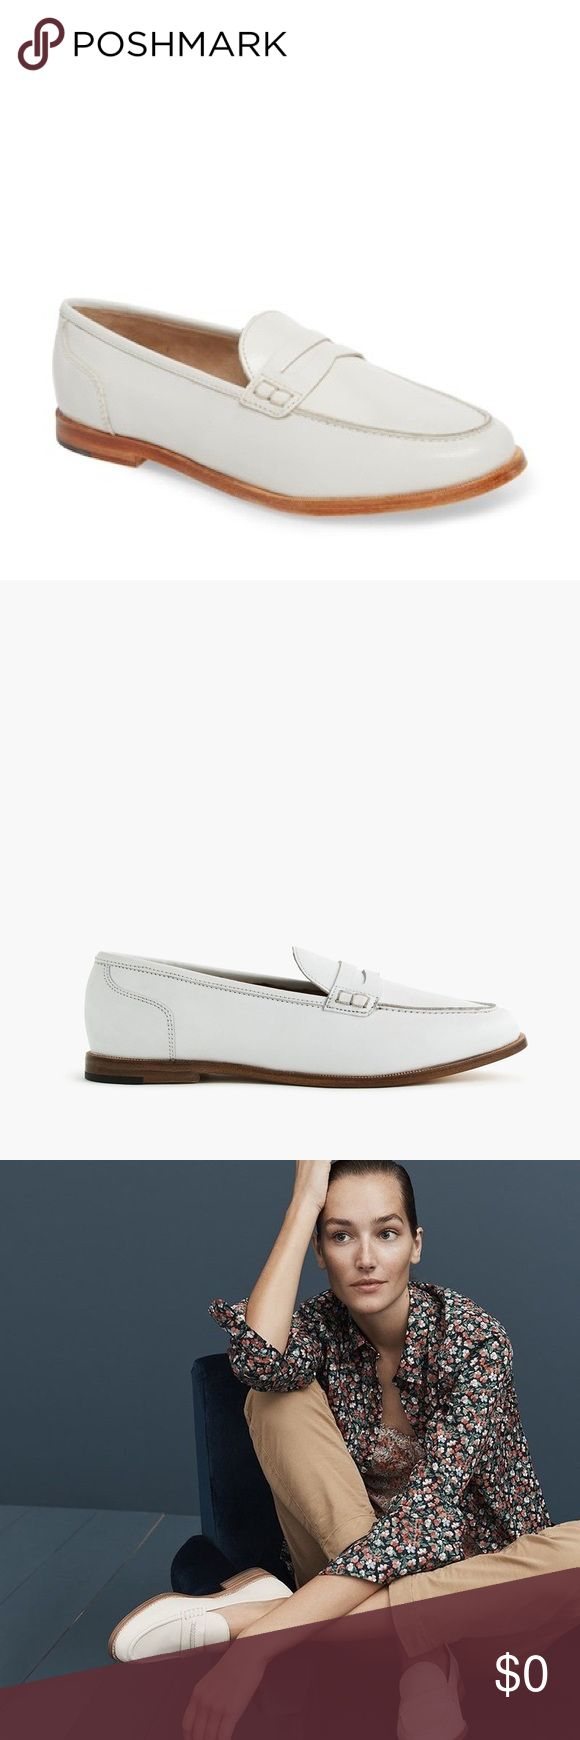 J. Crew Academy Loafers in White Leather | Loafers, Vans ...